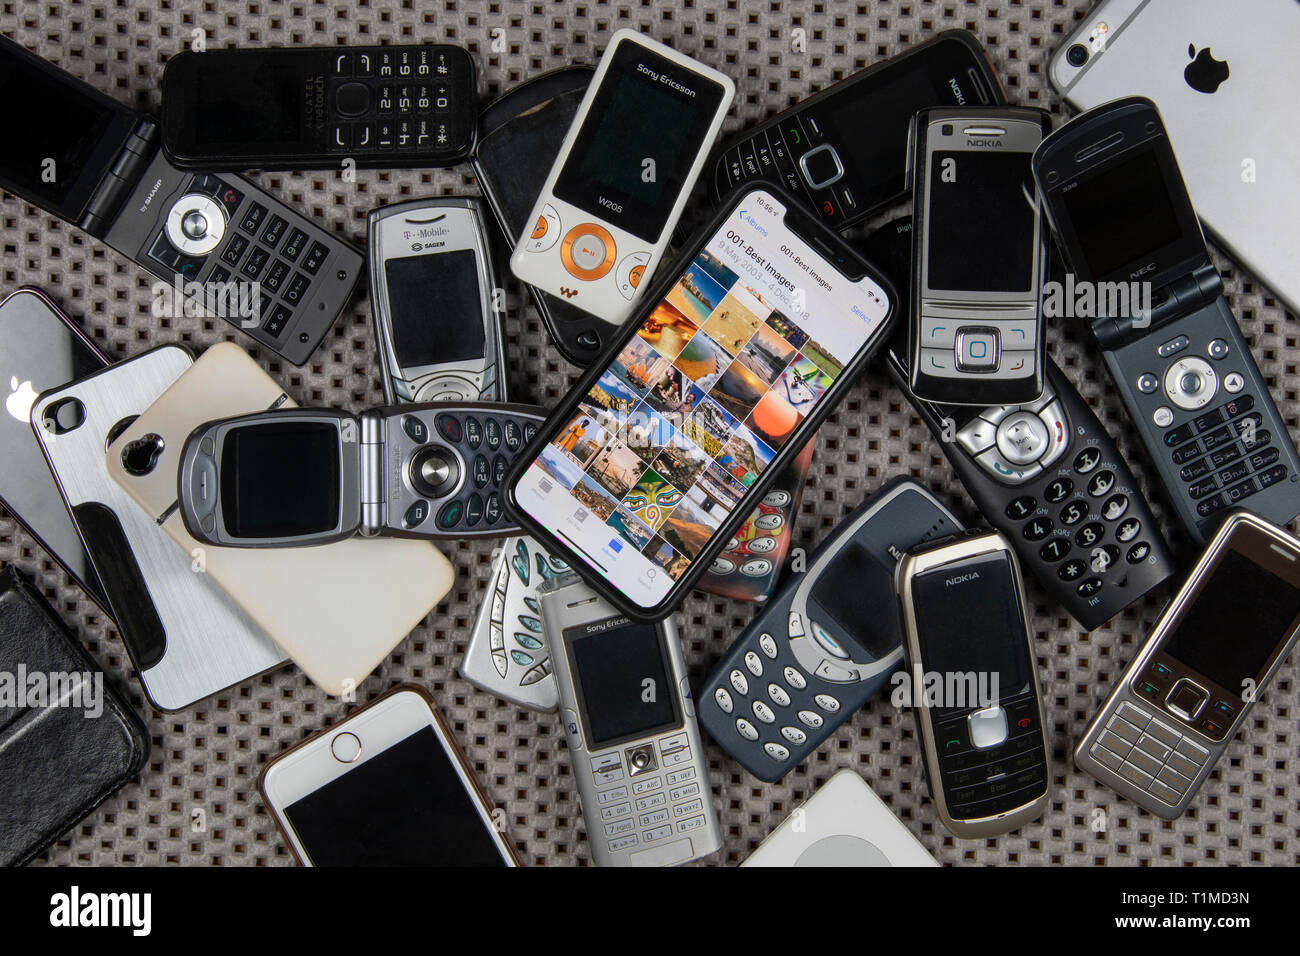 A modern smartphone on a pile of old, obsolete mobile phones. Stock Photo